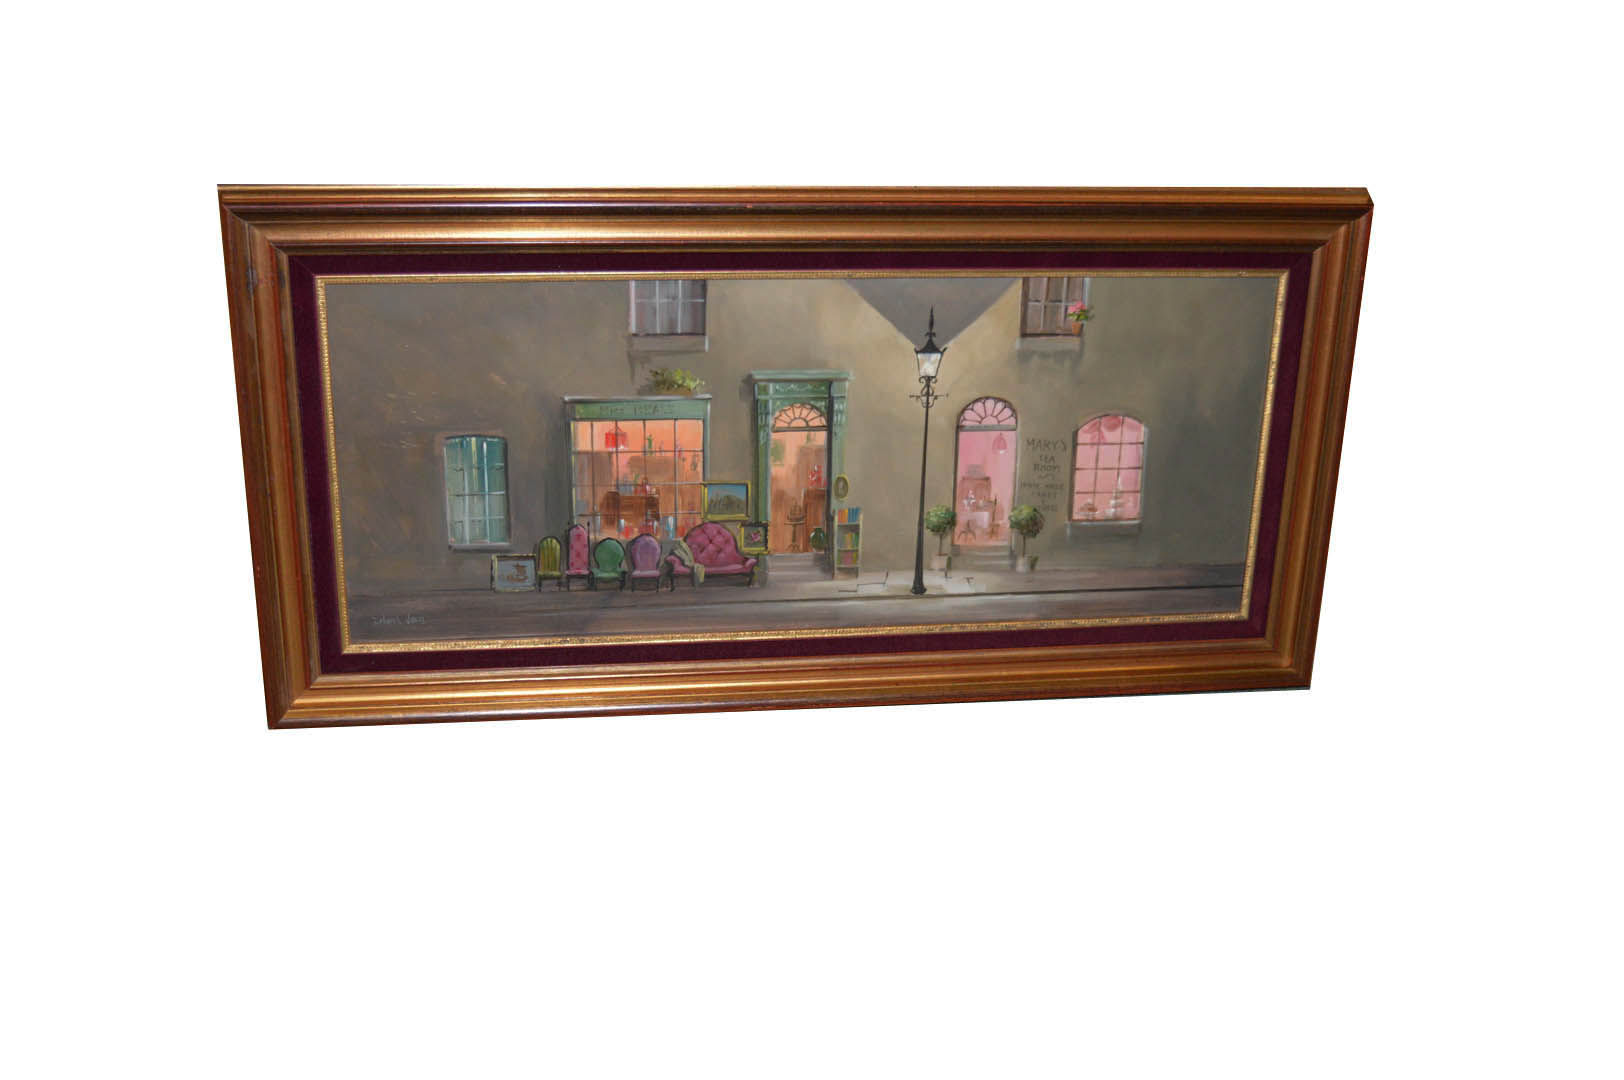 Lot 266 - An Oil Painting 'Mrs Beale Antiques - Deborah Jones